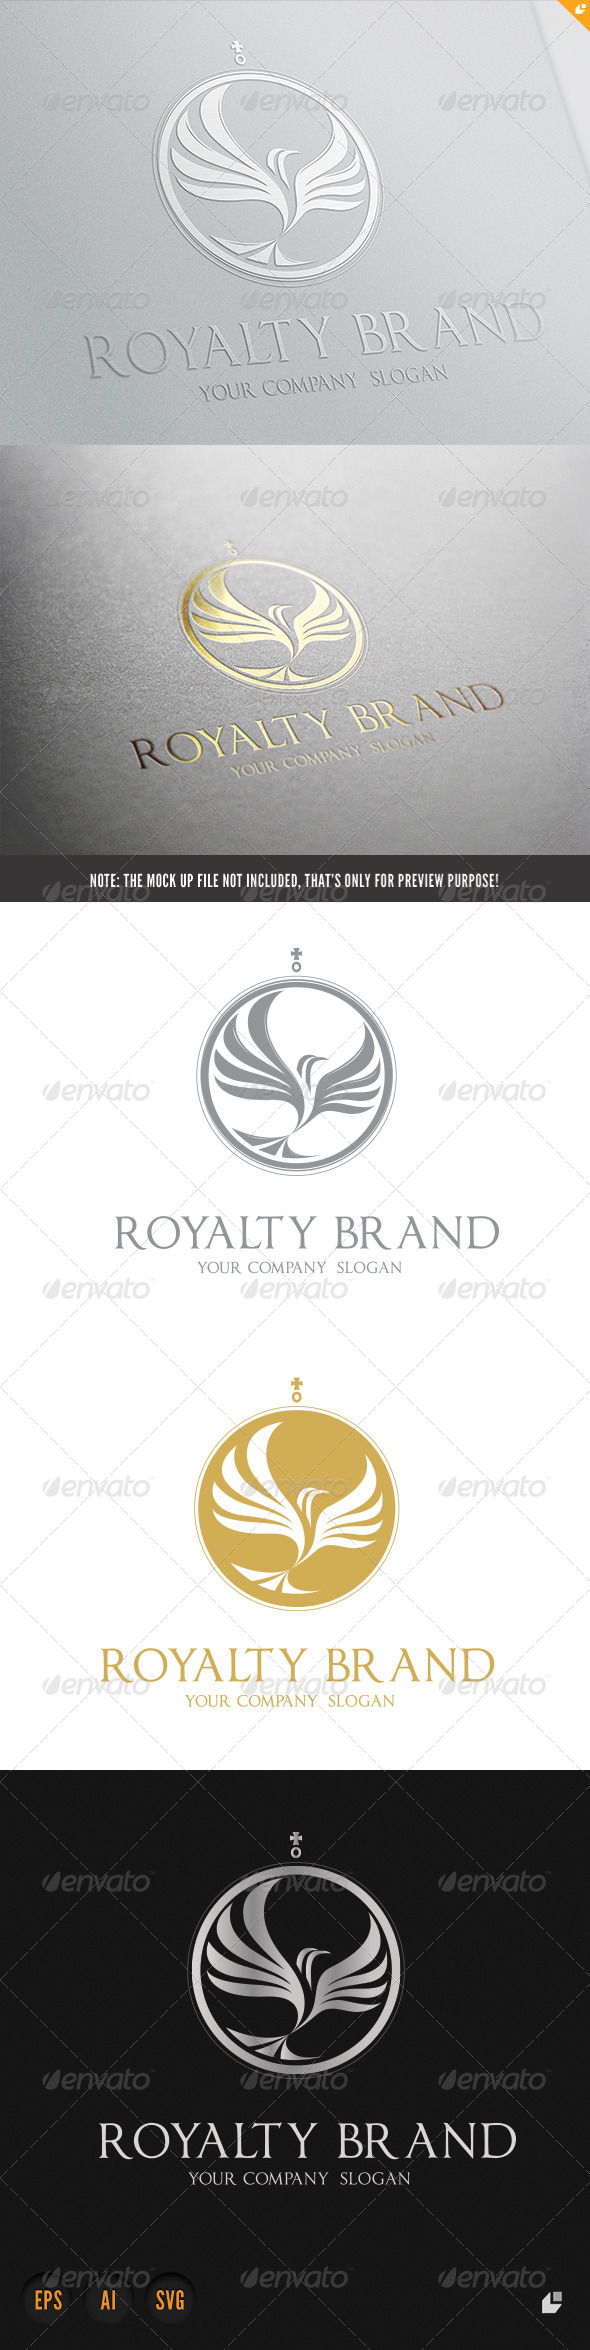 GraphicRiver Royalty Brand 5905285